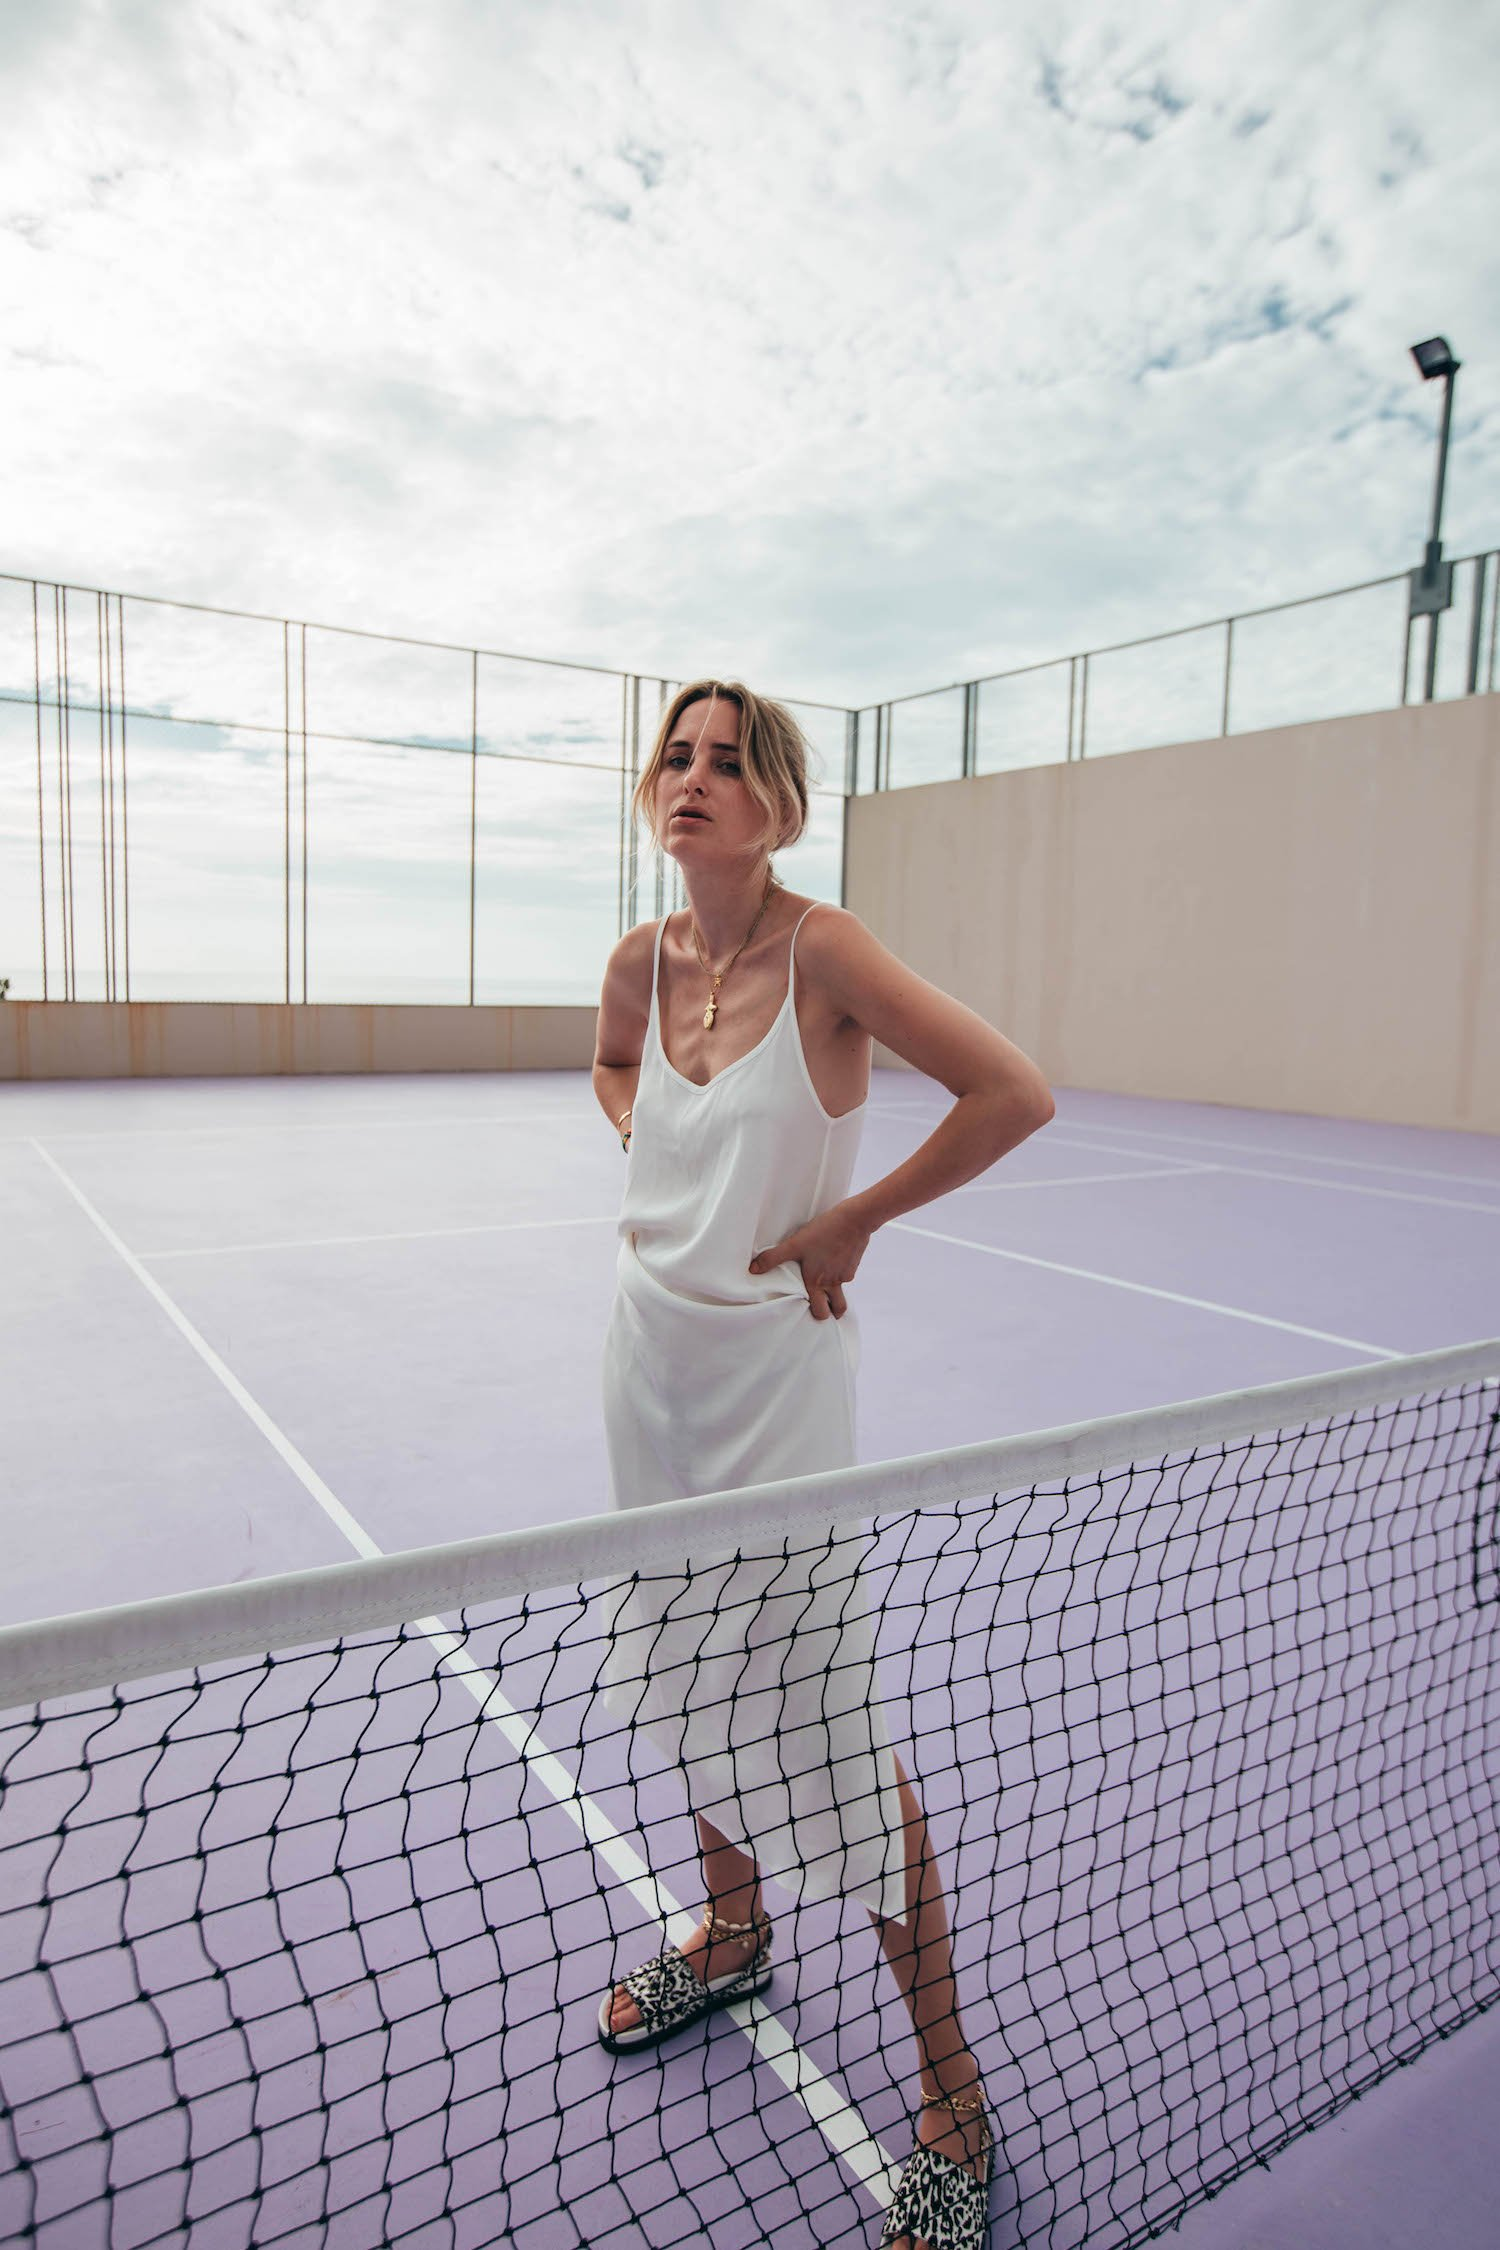 SLIP DRESS TENNIS COURT